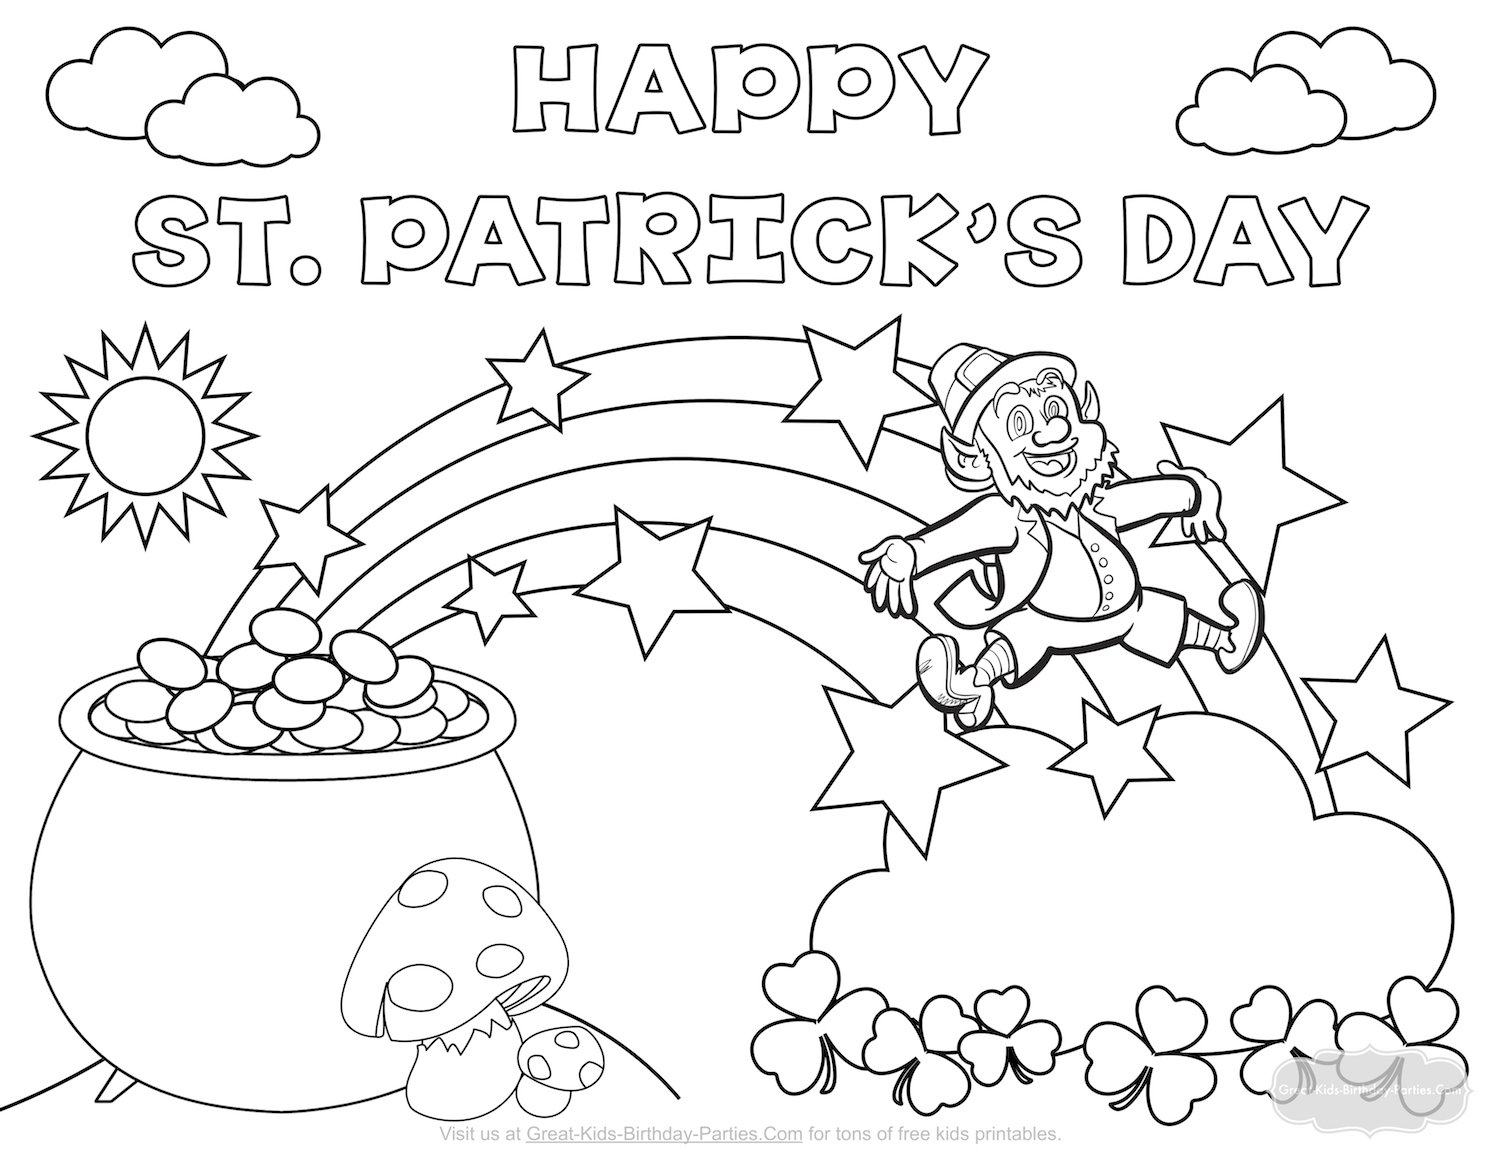 Coloring Pages : Free Coloring Sheets For Kids St Patricks Day - Free Printable Saint Patrick Coloring Pages